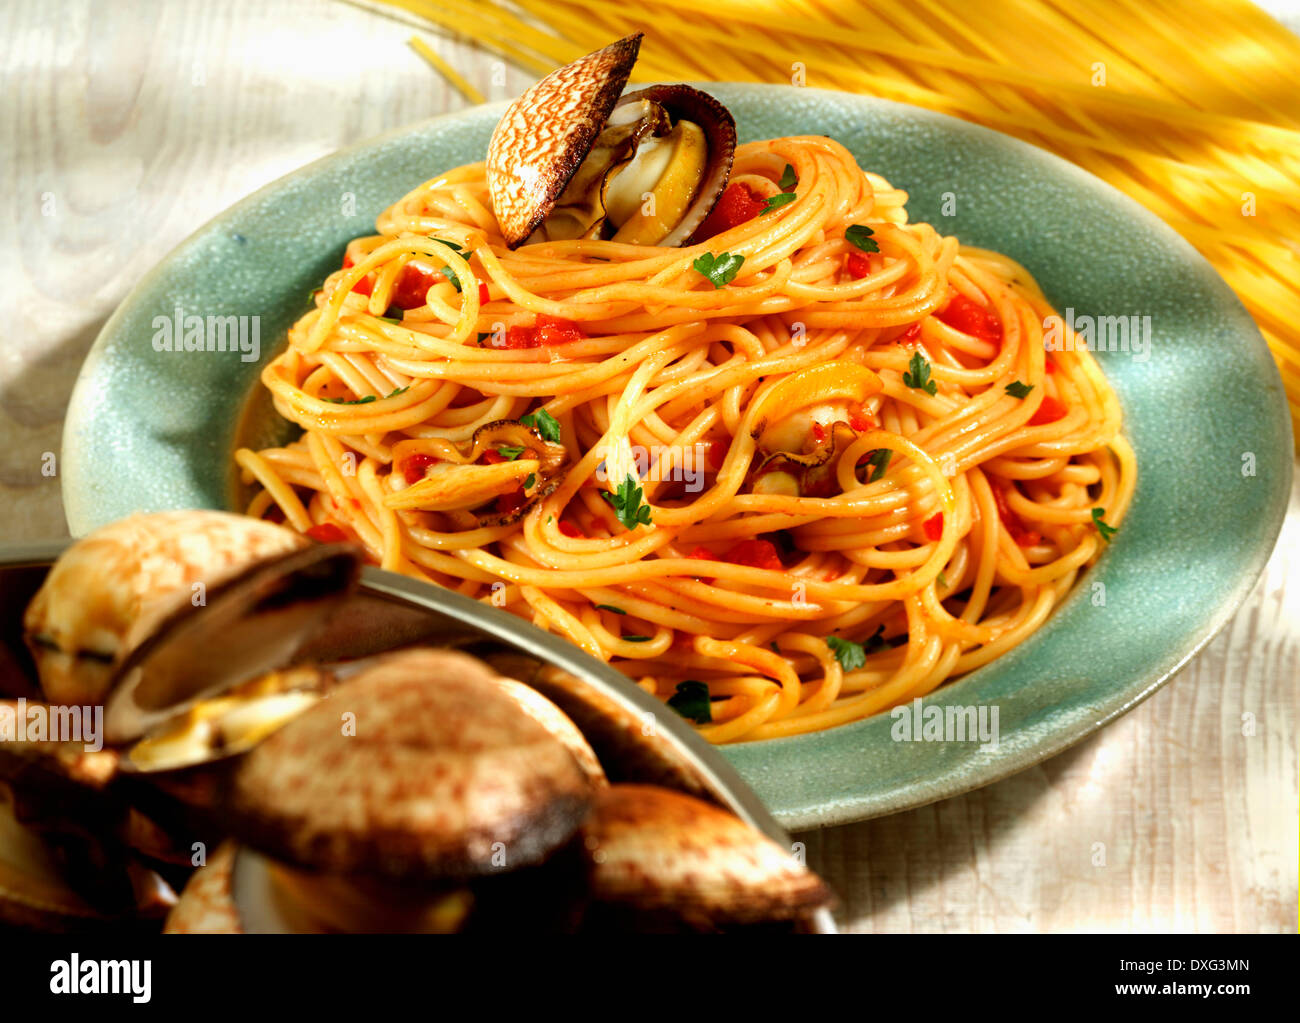 Plate Of Homemade Spaghetti With Clams - Stock Image